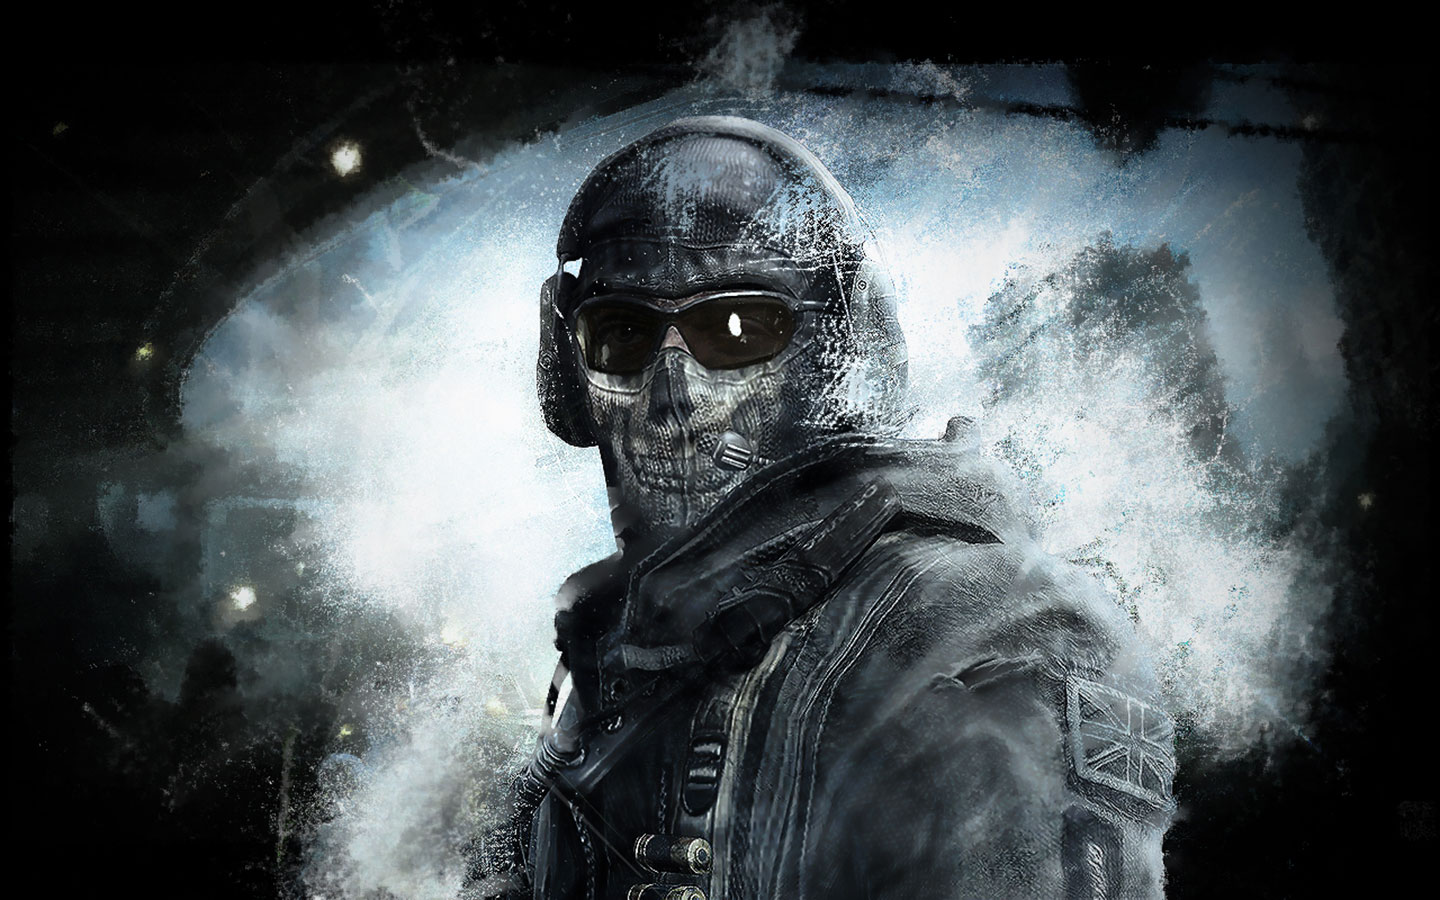 Xbox Reveal Call Of Duty Ghosts To Be Live